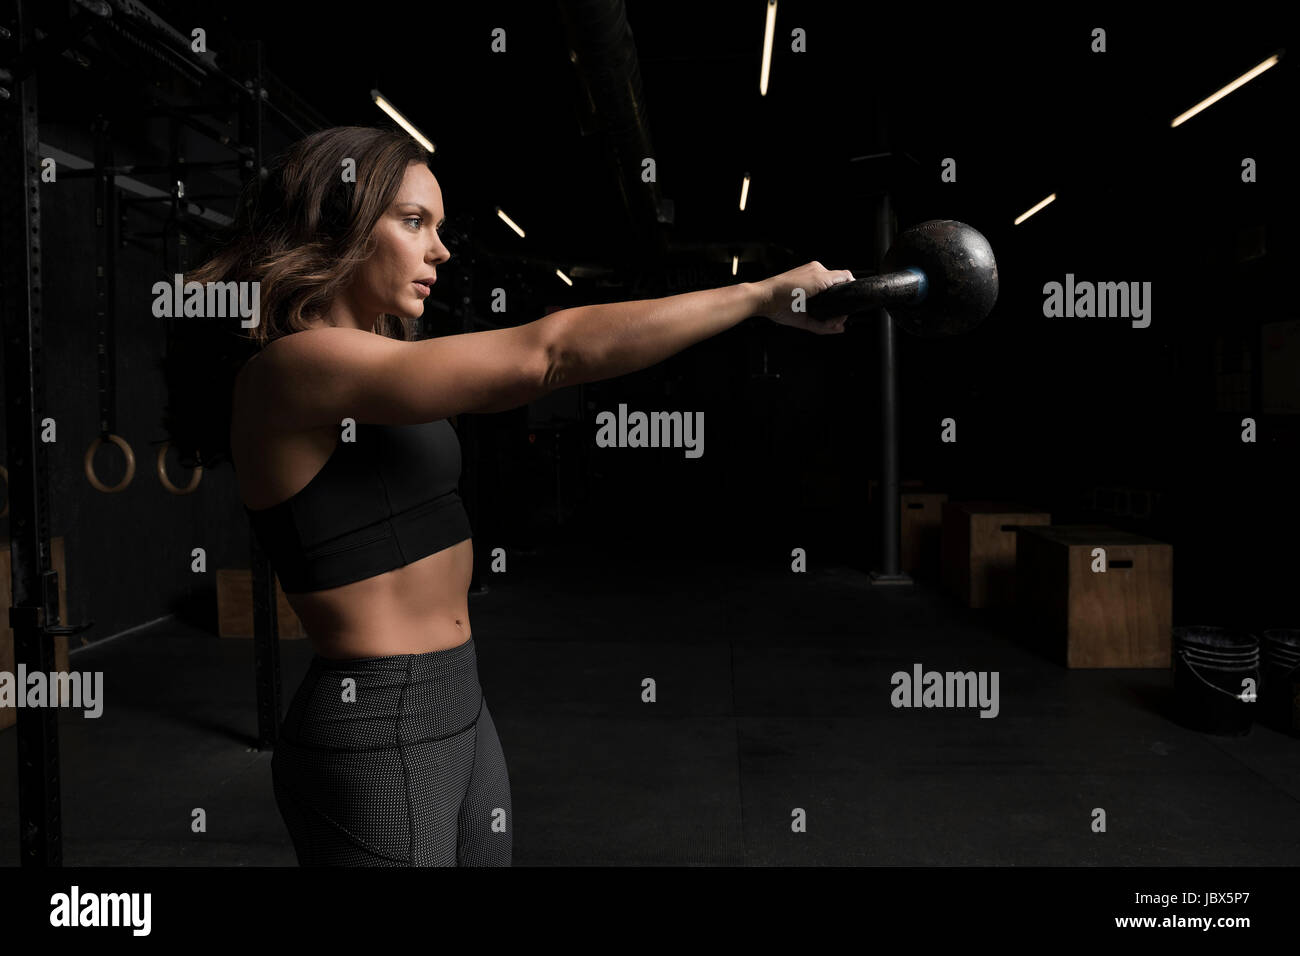 Young woman working out in cross fit gym - Stock Image